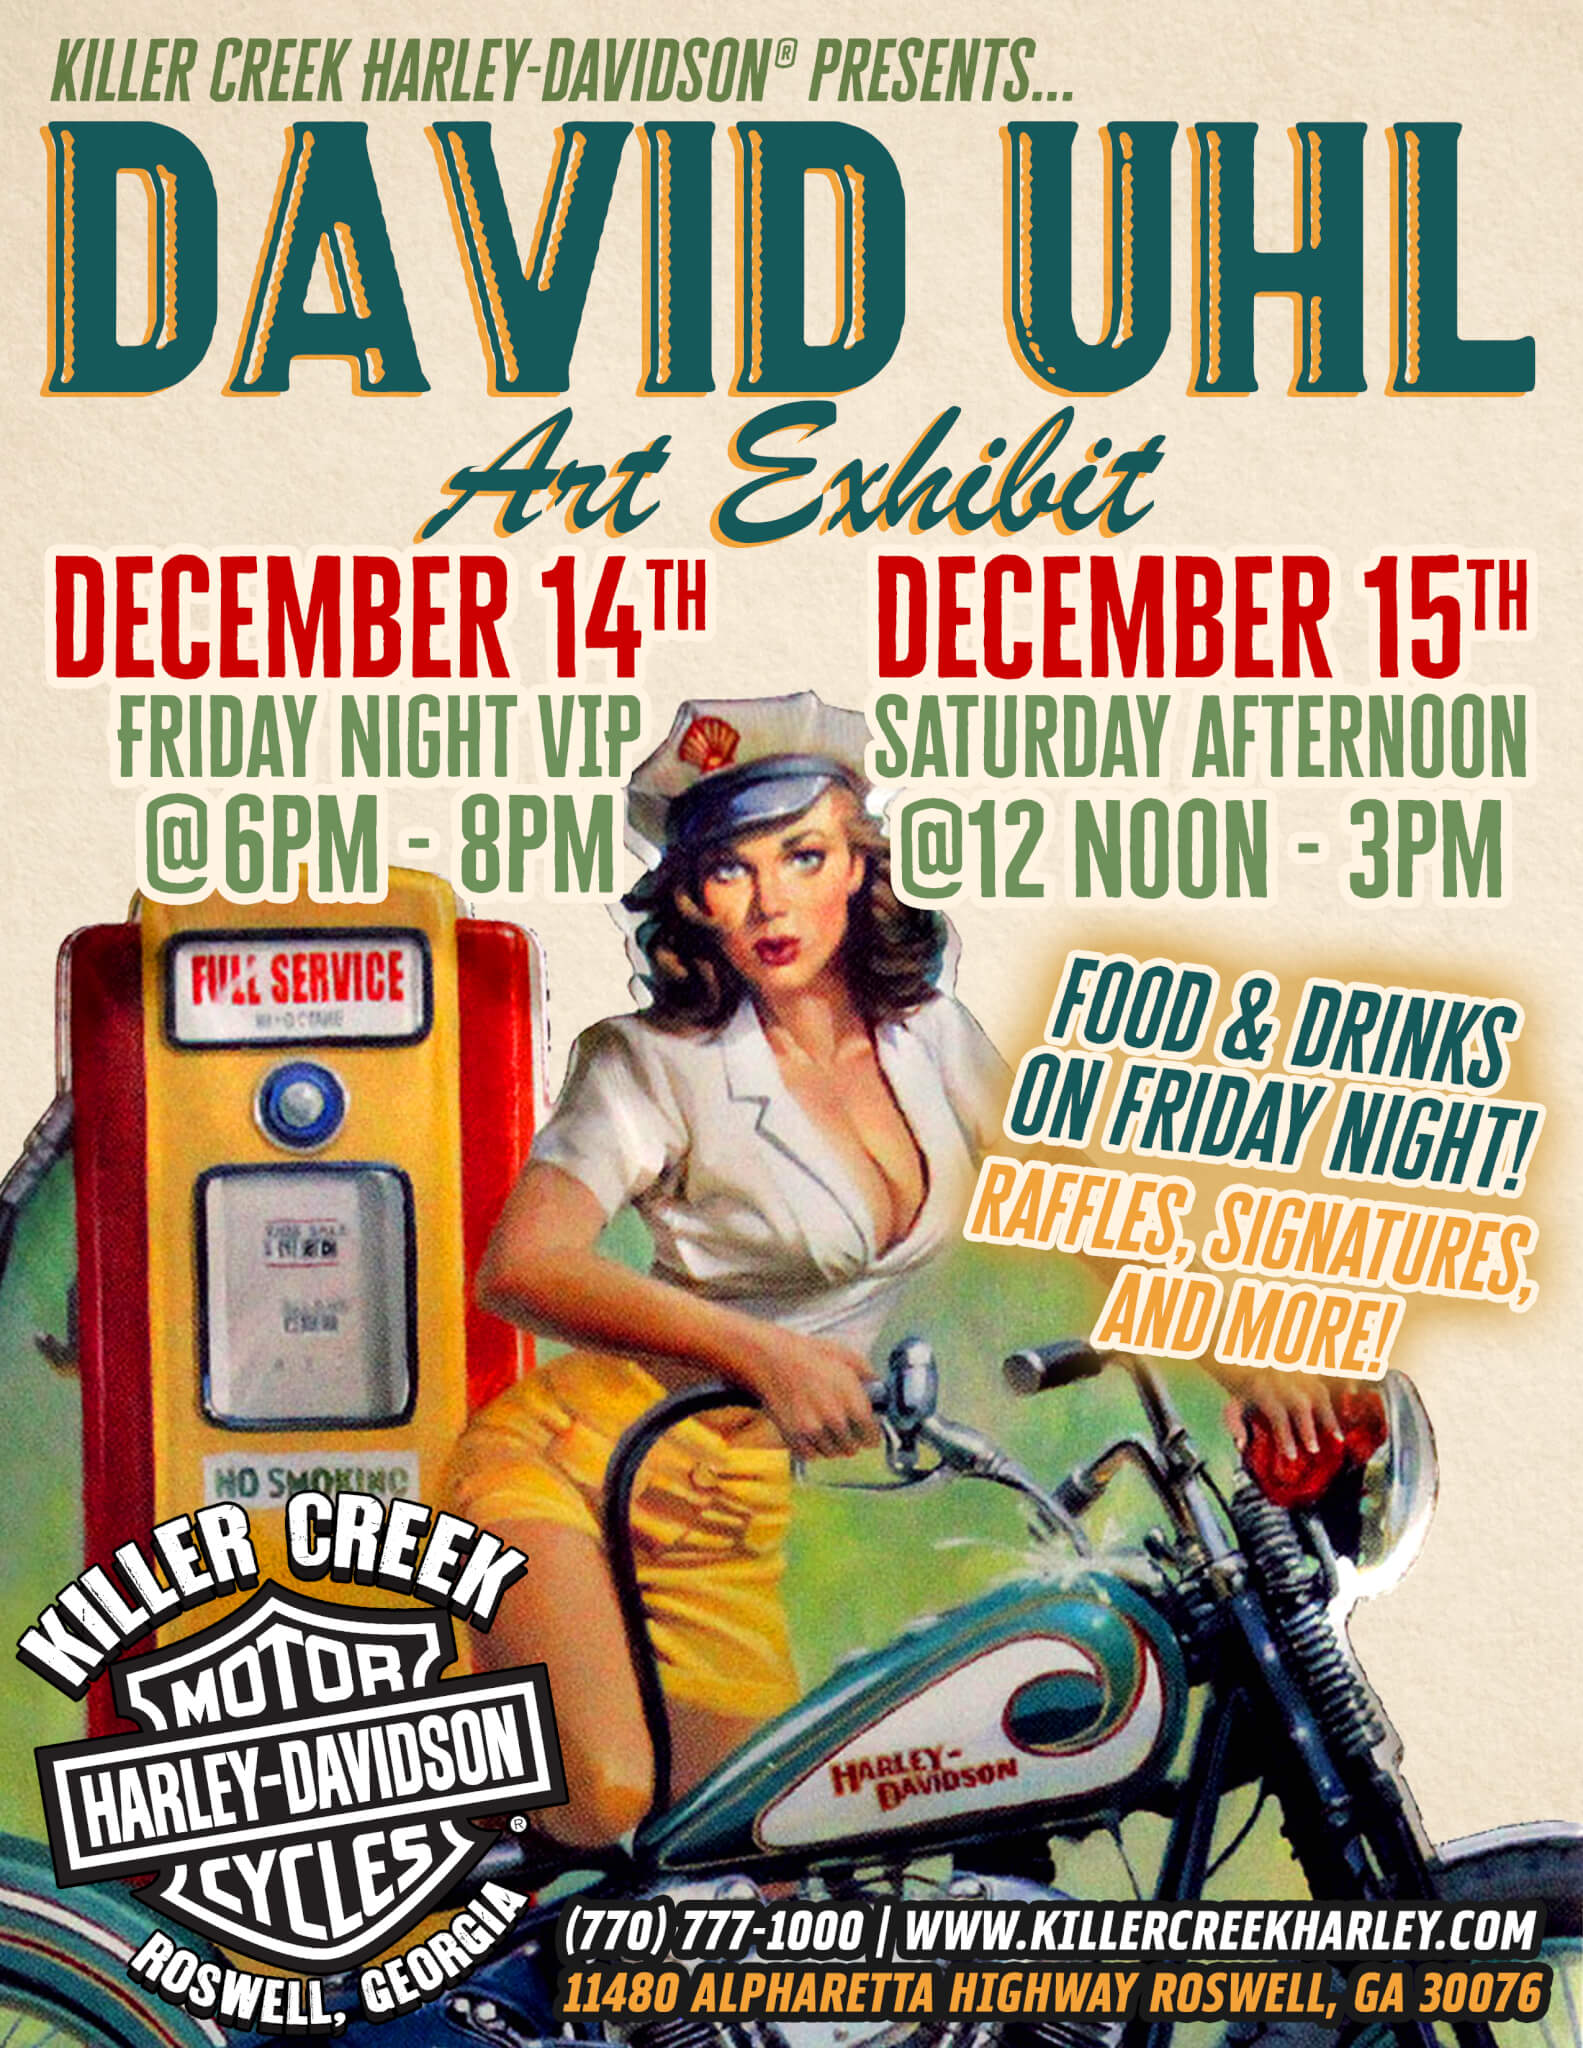 David Uhl Art Exhibit